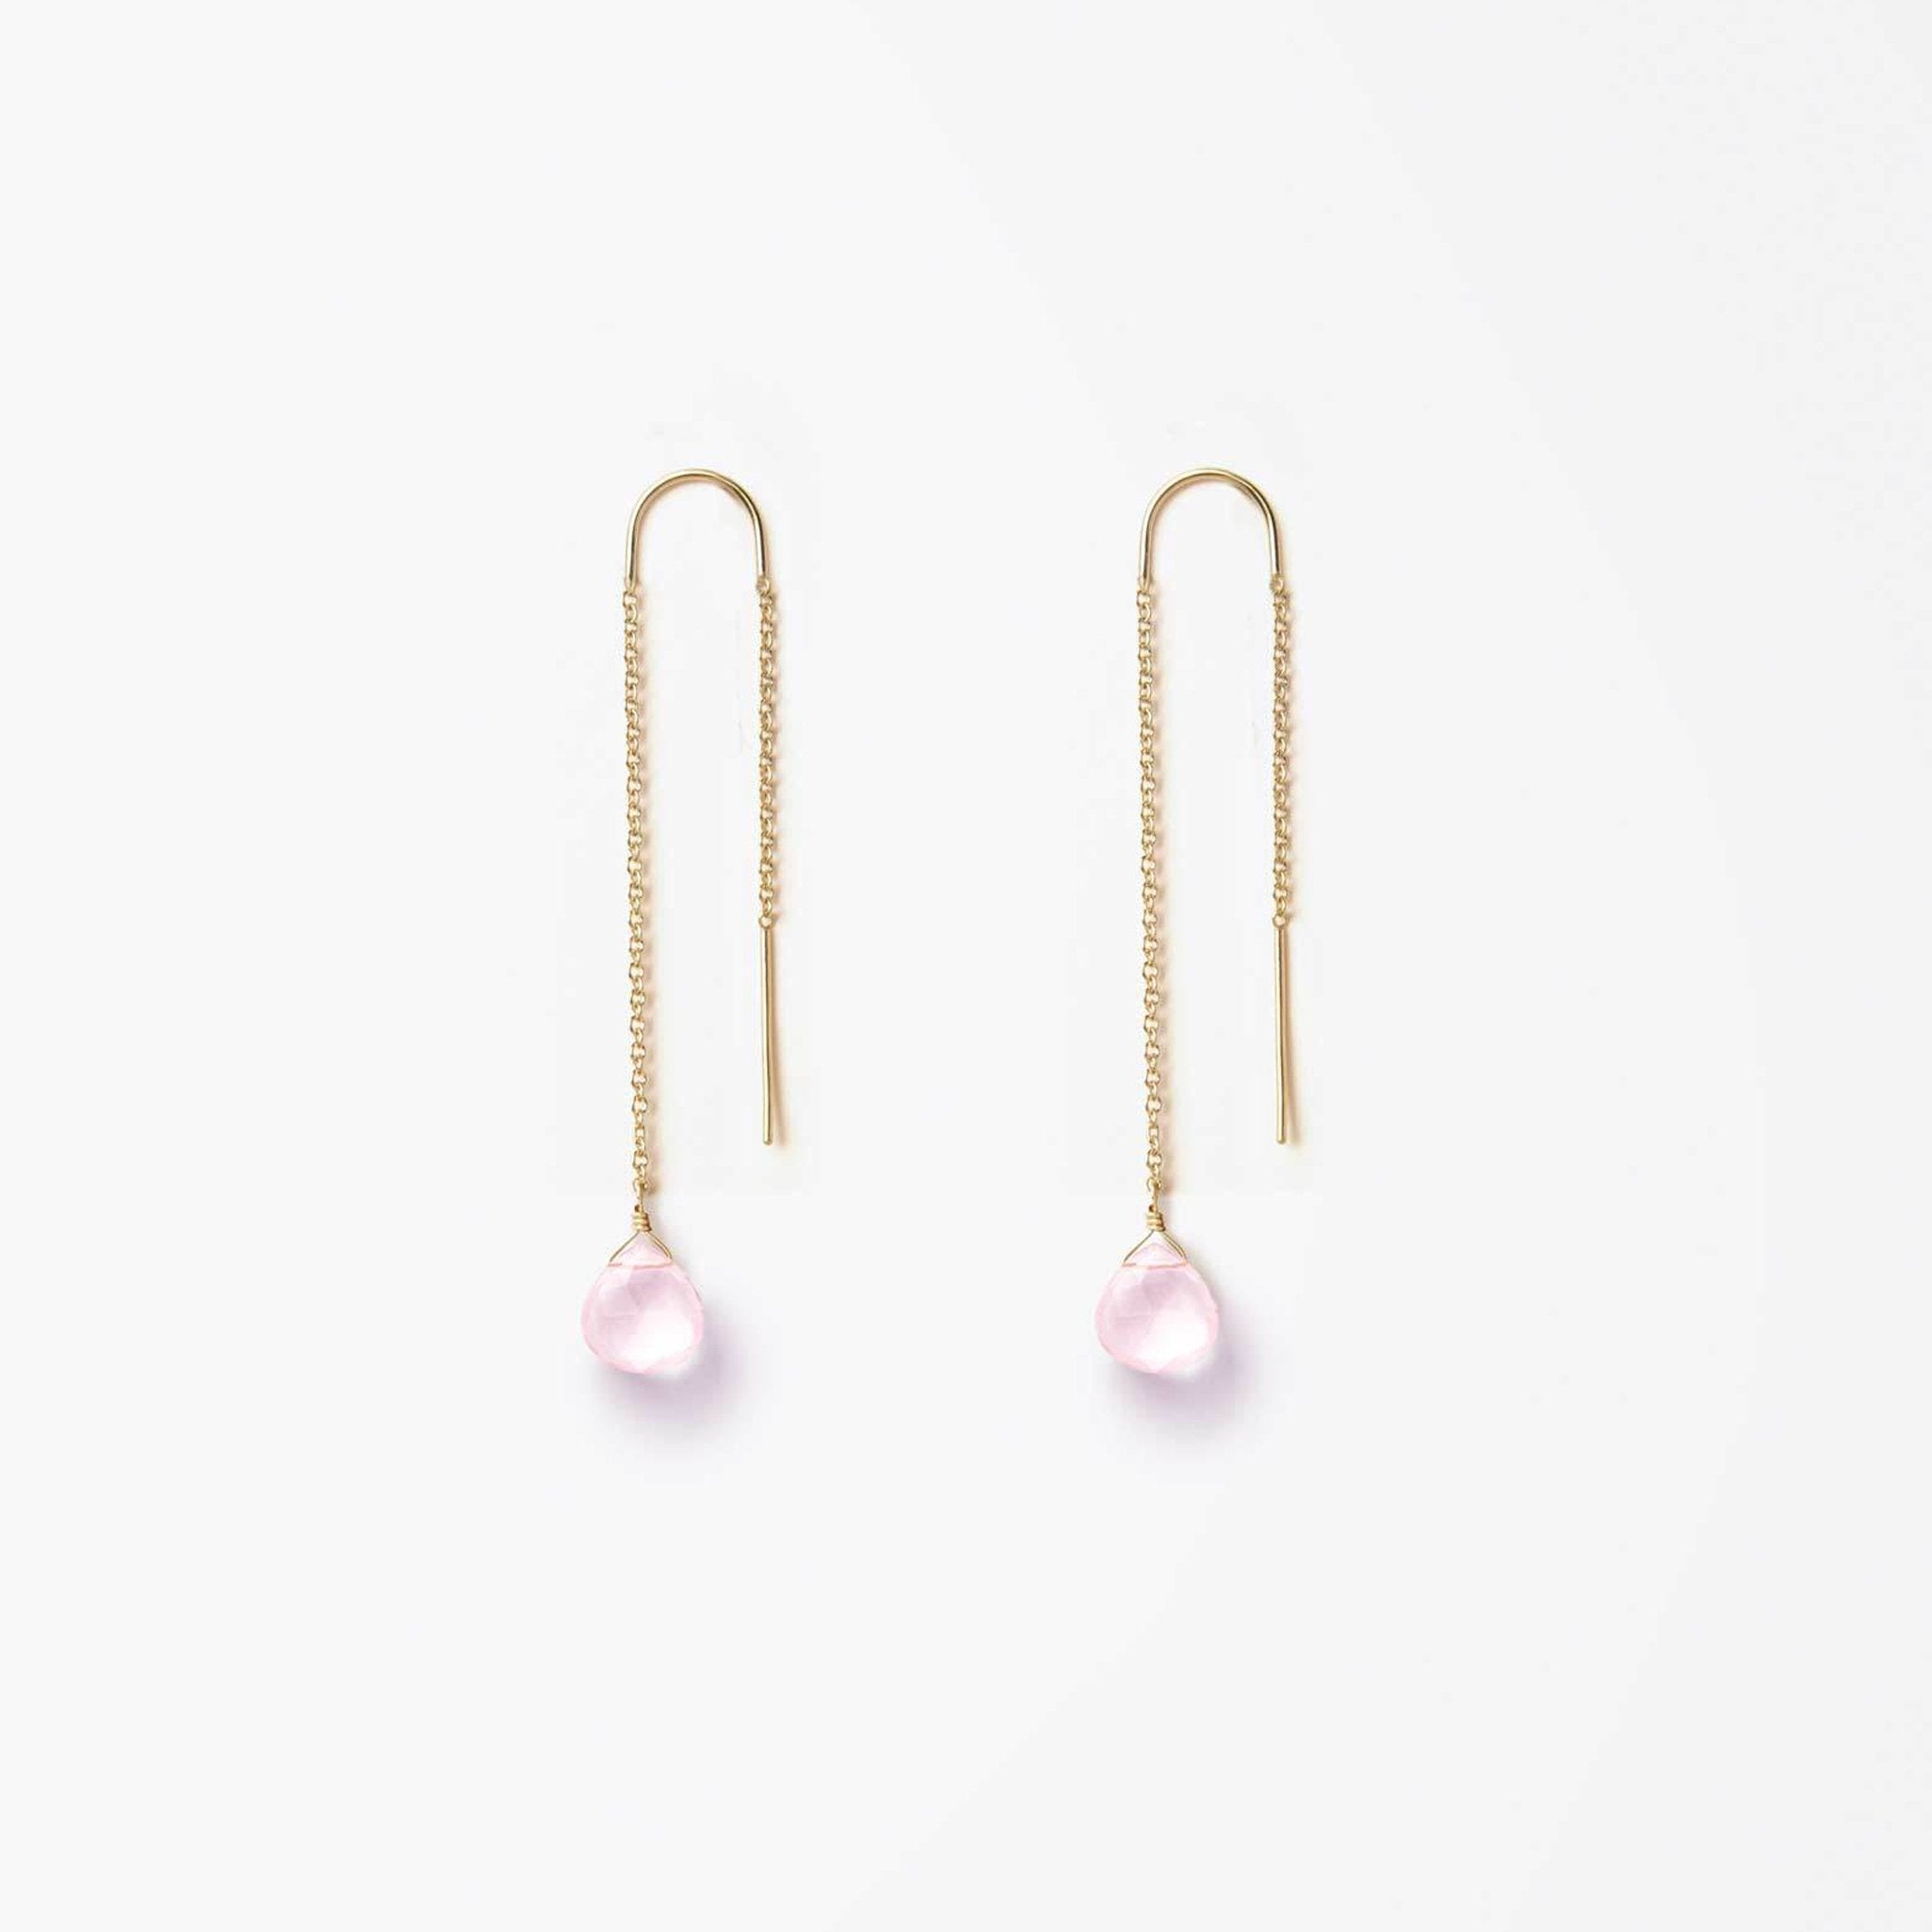 Wanderlust Life Ethically Handmade jewellery made in the UK. Minimalist gold and fine cord jewellery. waterfall earring, rose quartz